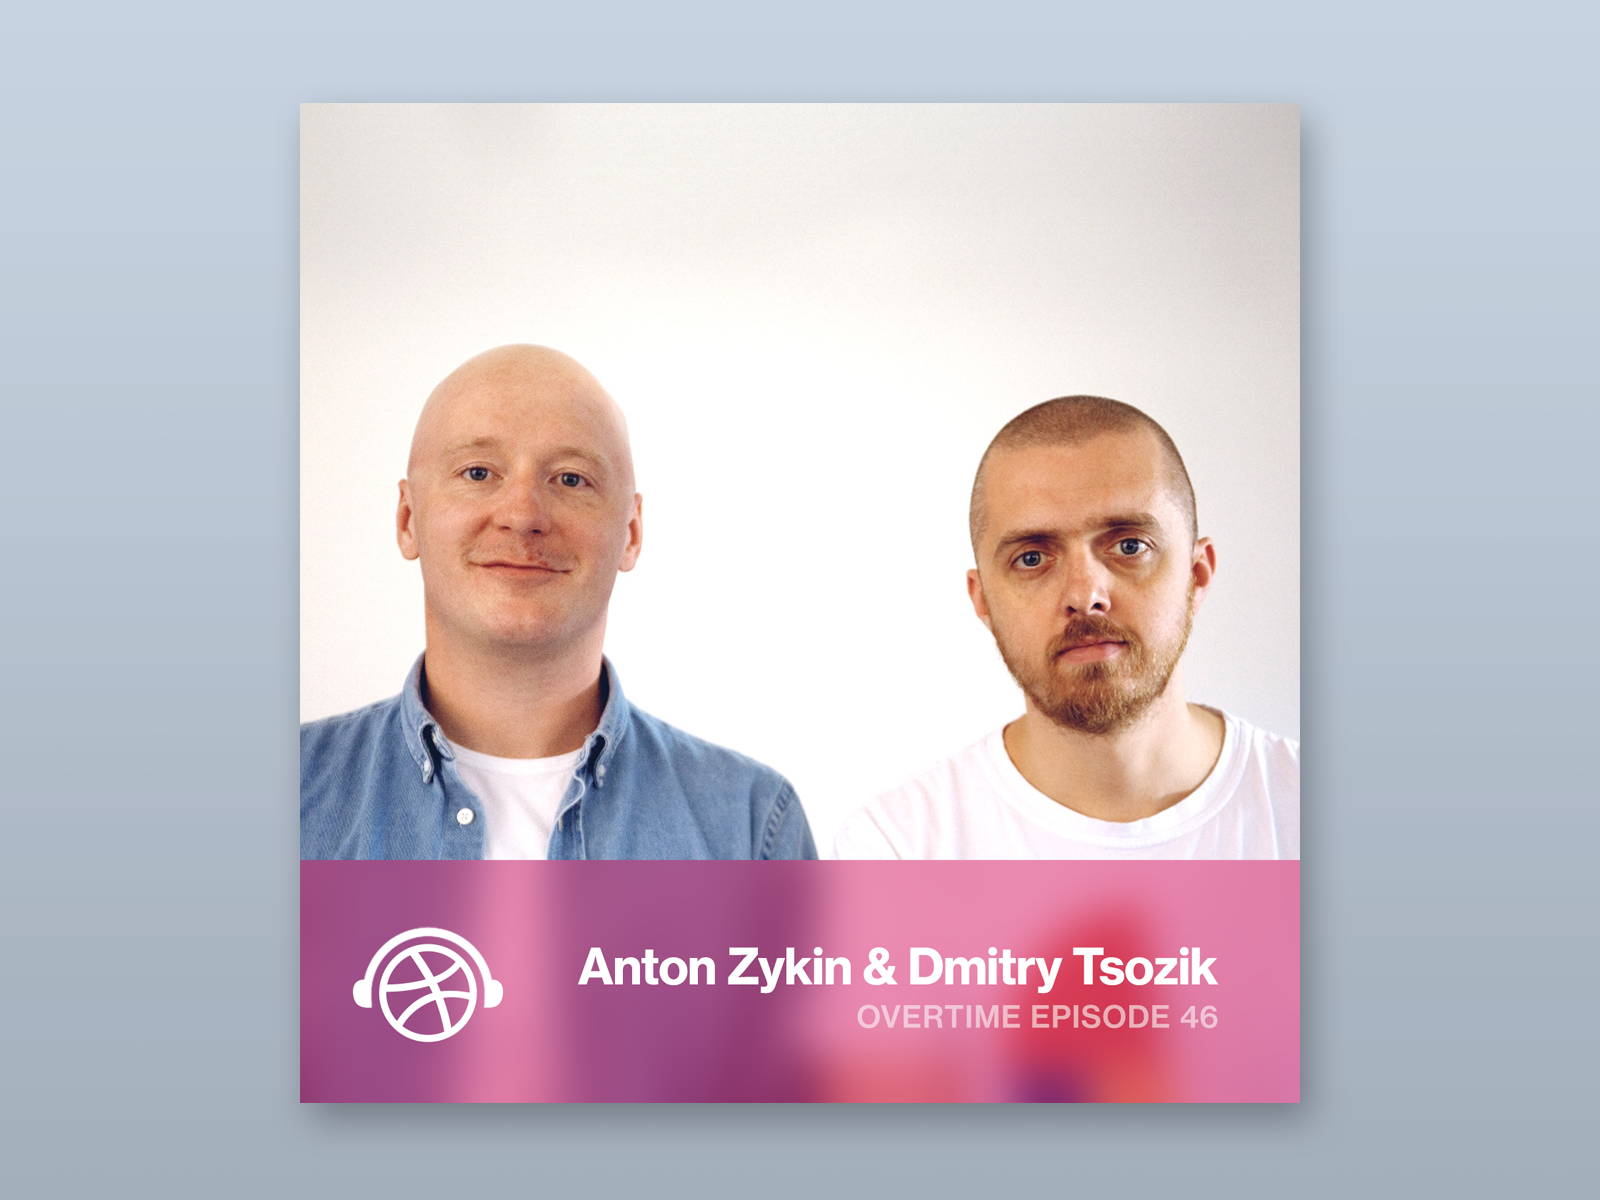 Anton zykin and dmitry tsozik